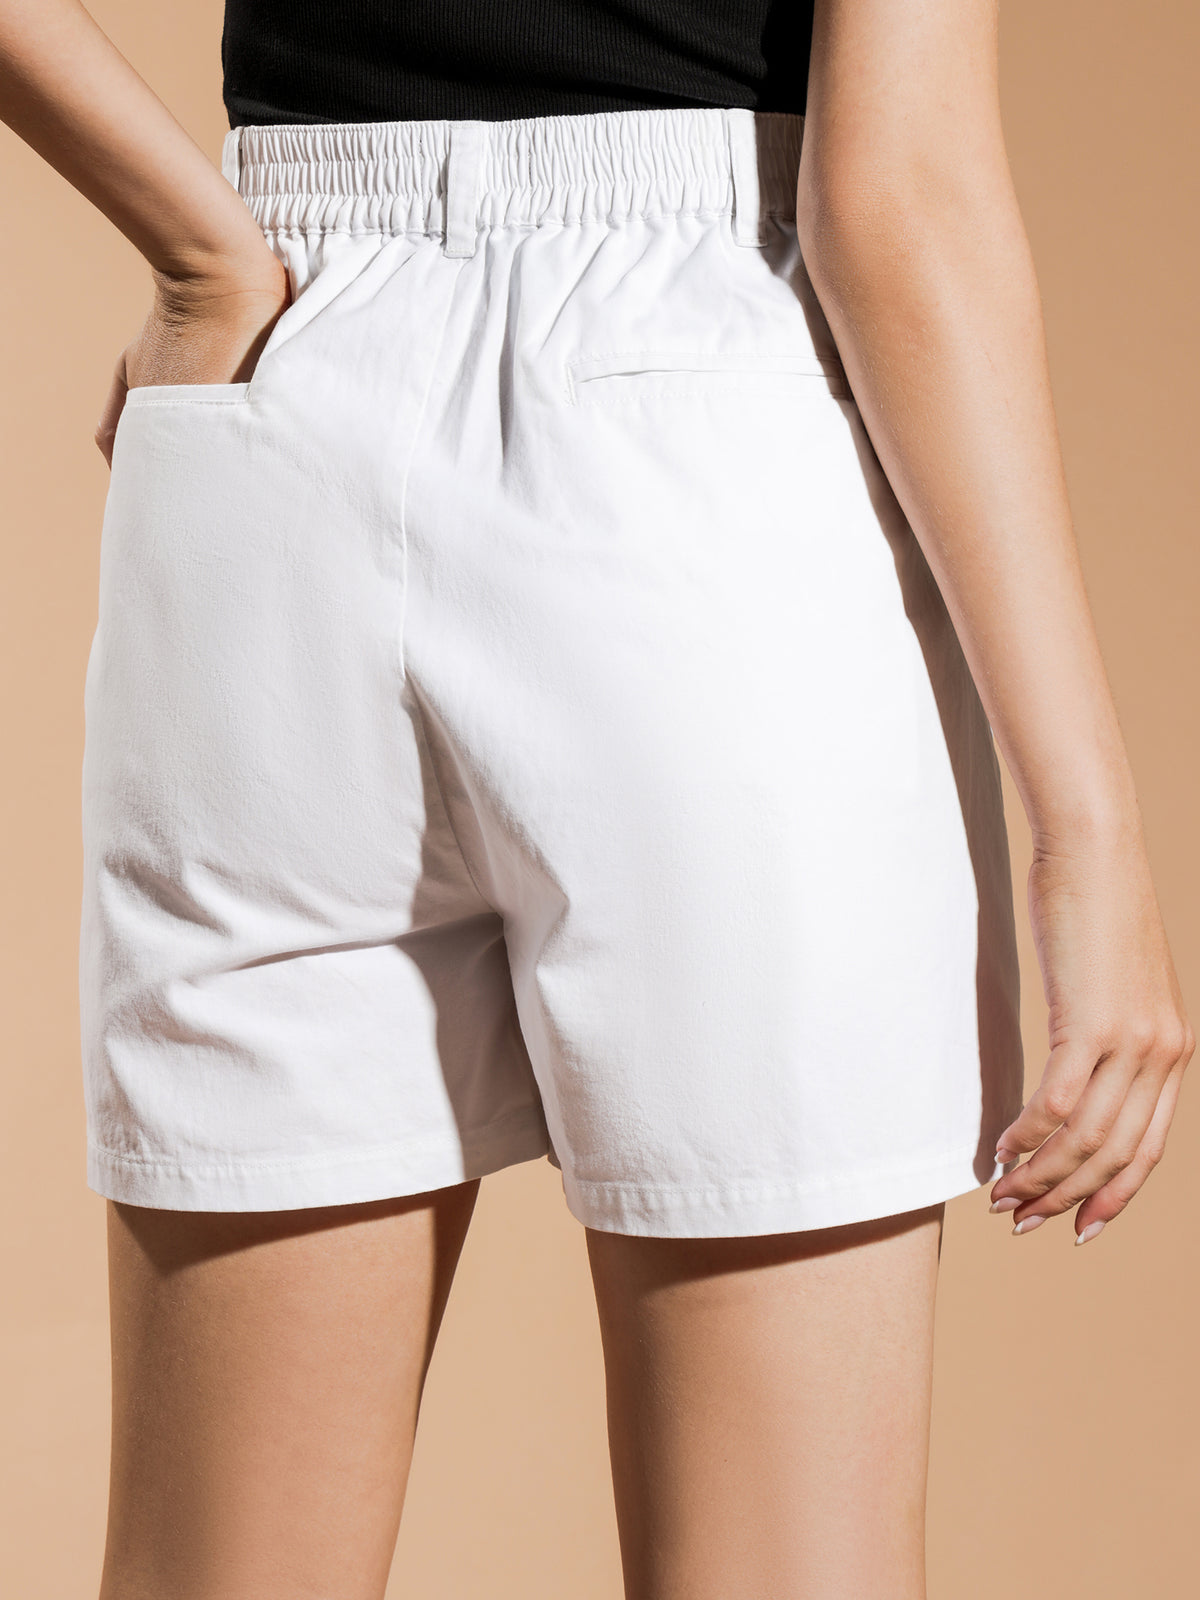 Brentwood Pleated Shorts in White